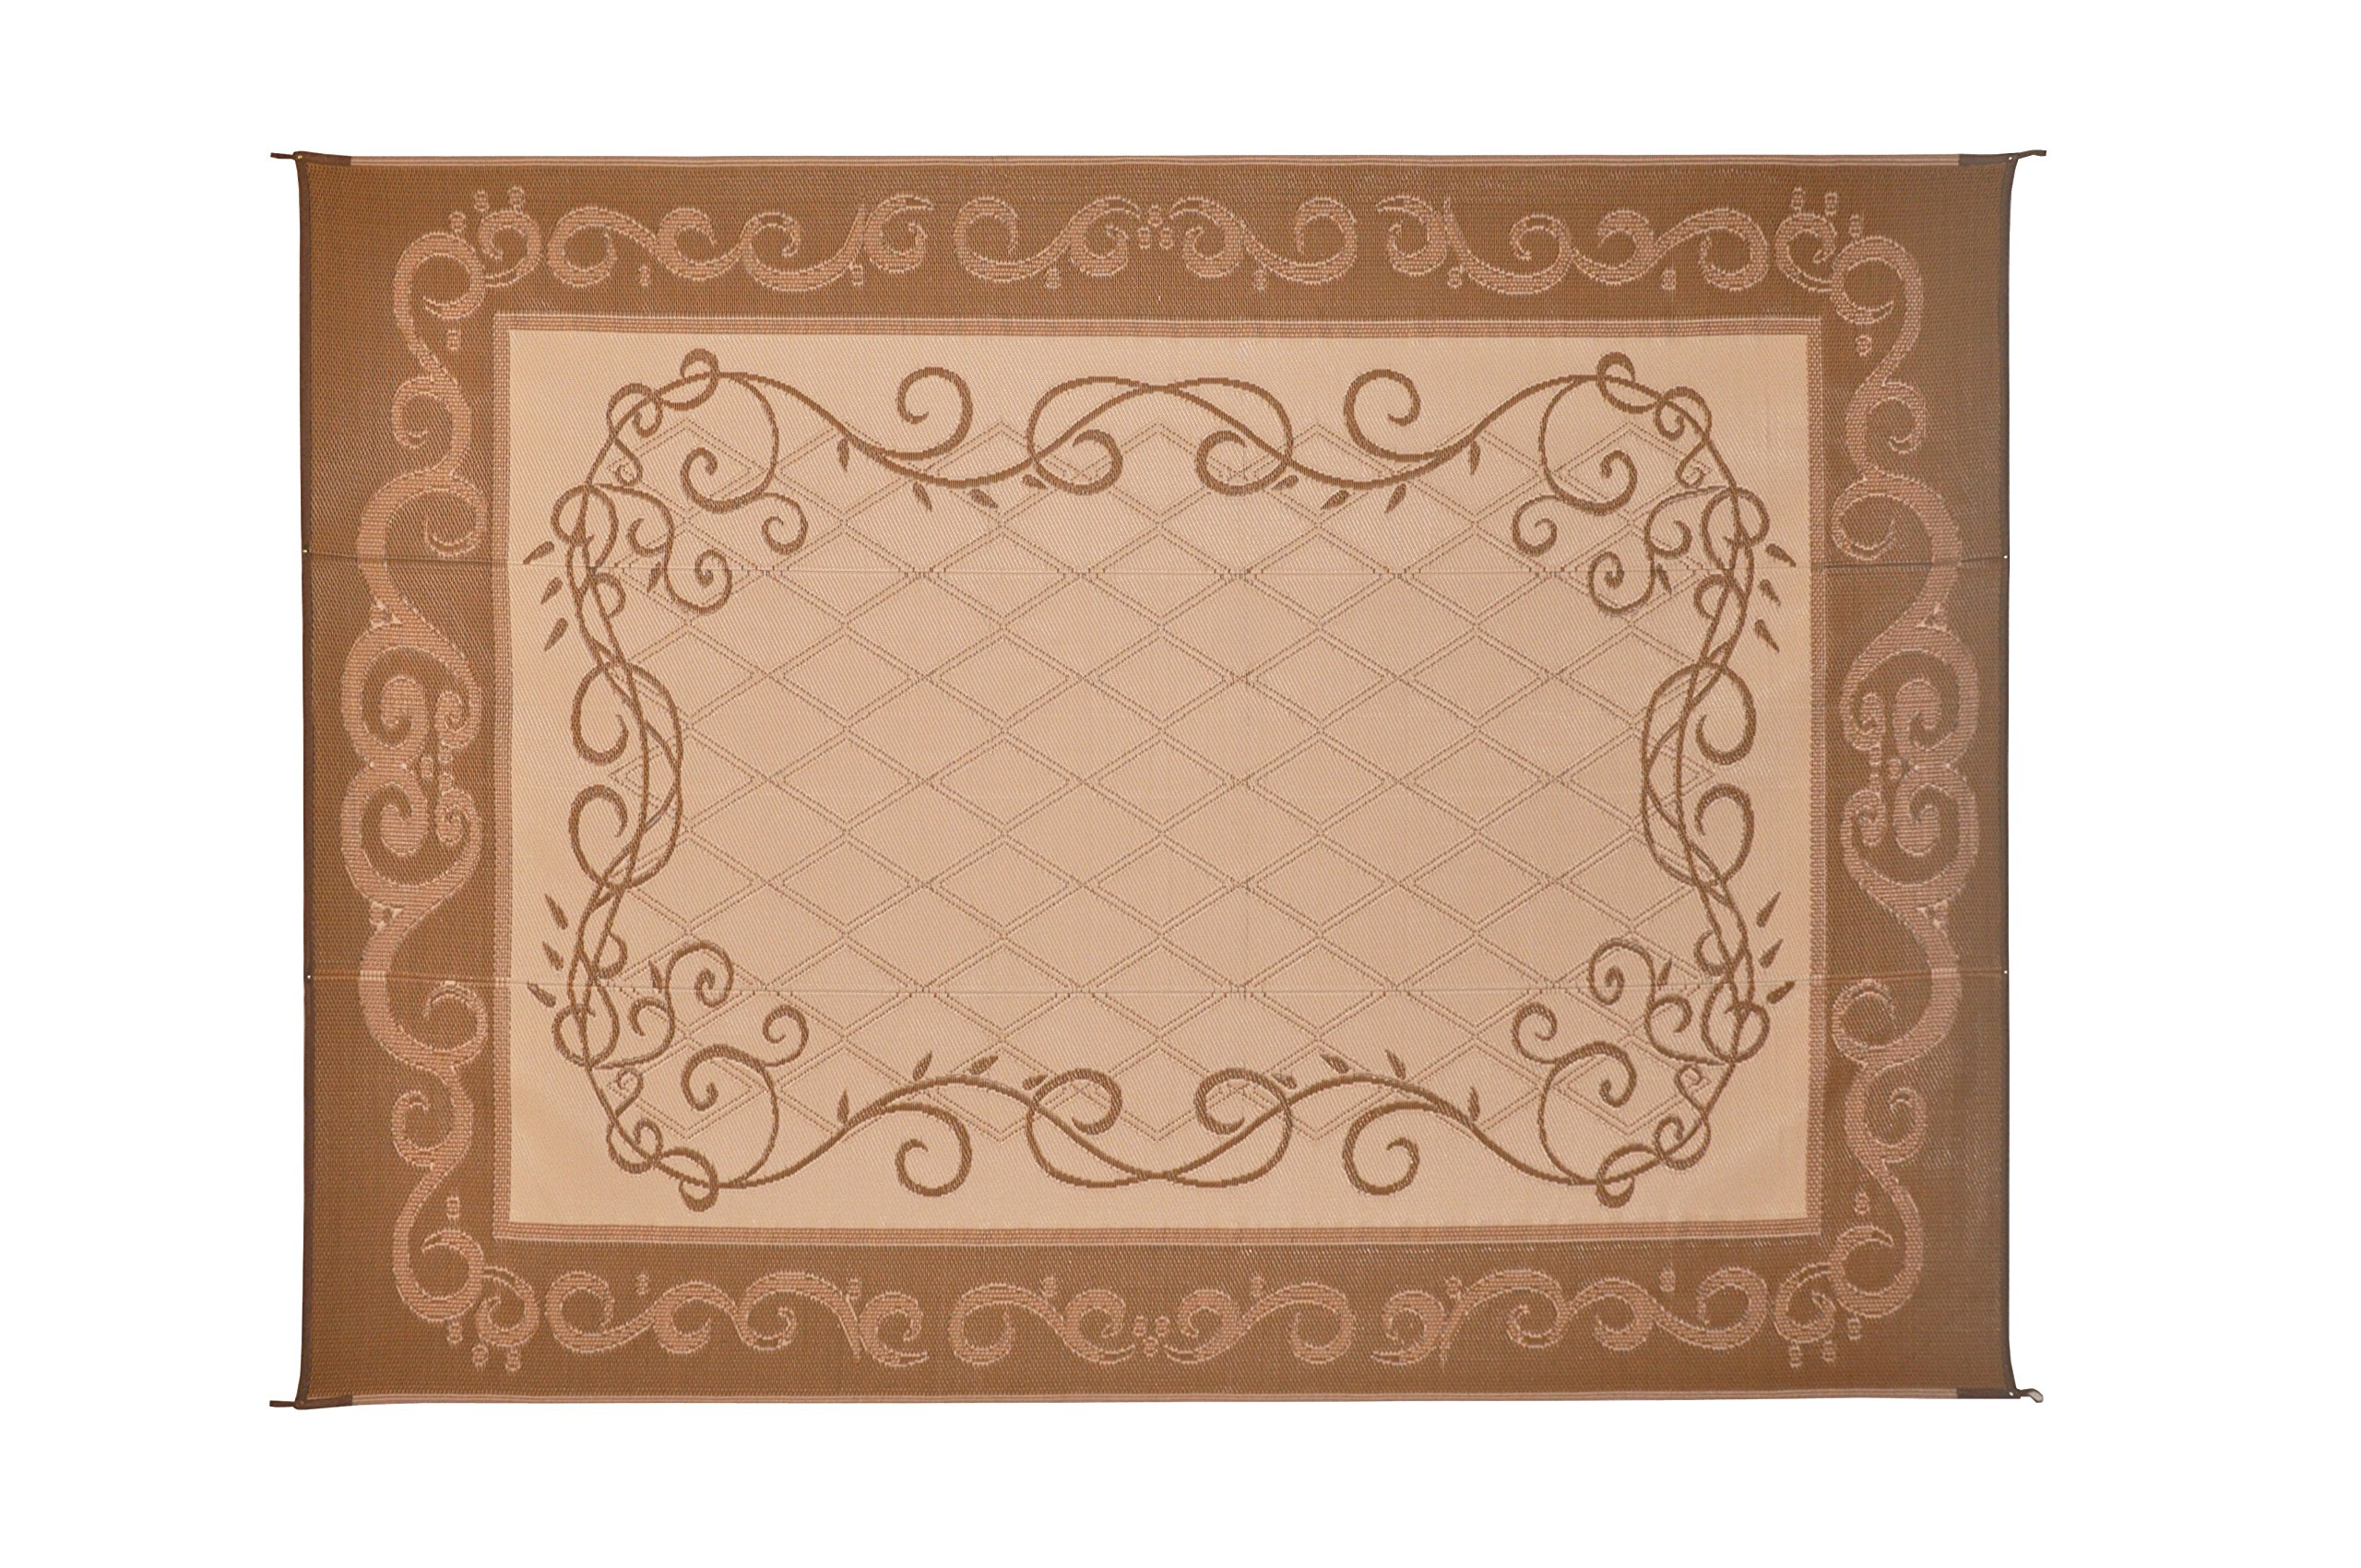 Reversible Mats 6-Feet x 9-Feet Brown & Beige Patio Garden Mat with Vine Design